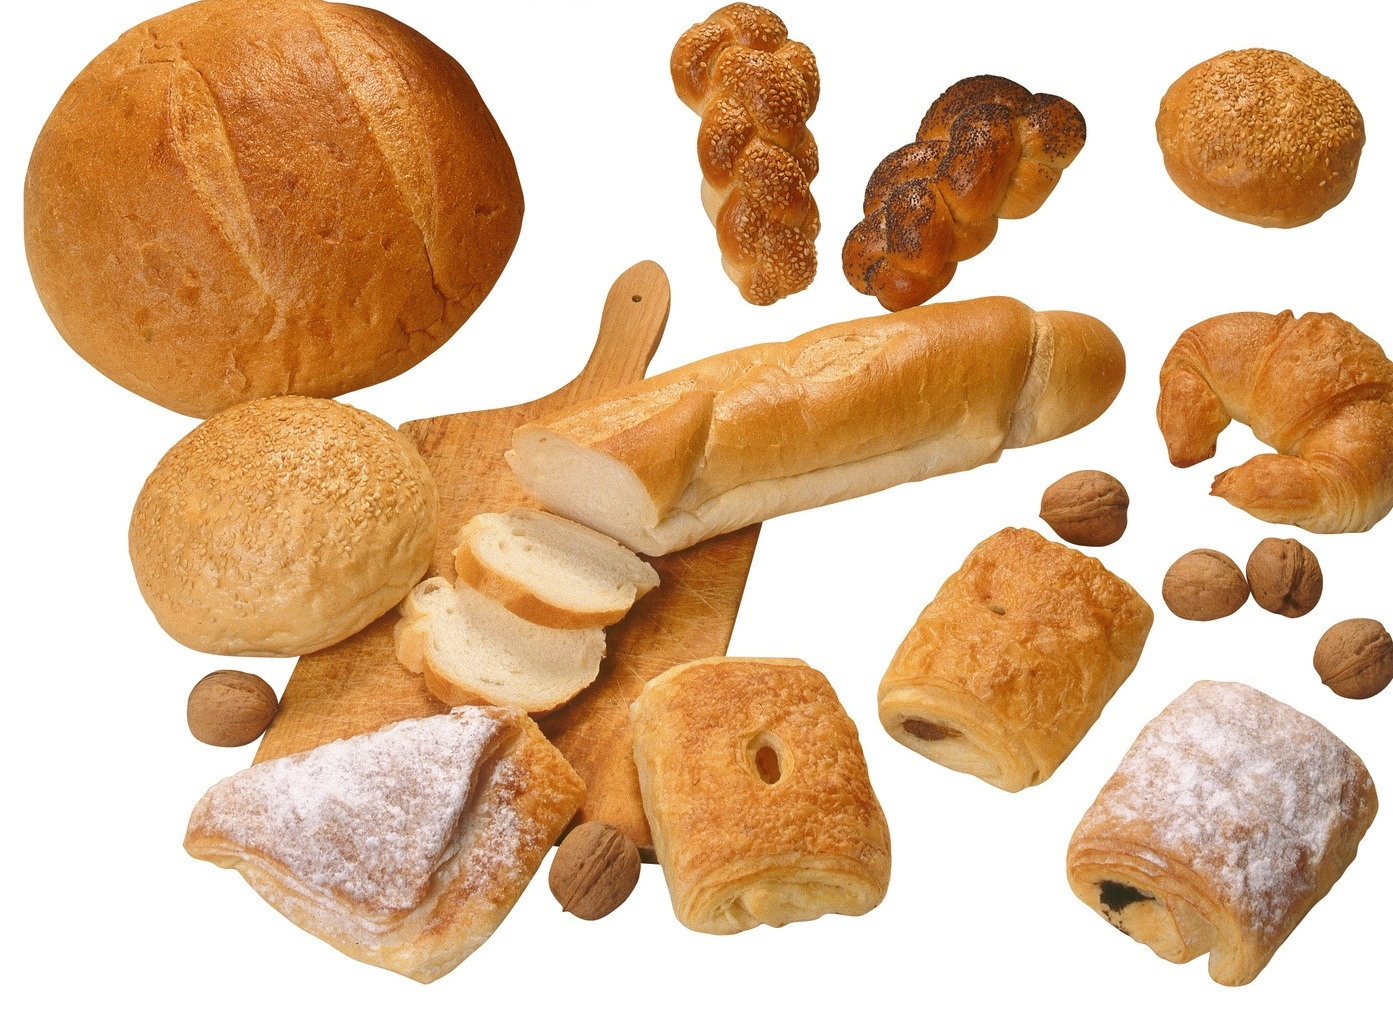 Spoilage of Baked Goods - Mold is the most common kind of spoilage of this group of products. If the product is preserved, preservative-resistant molds (PRM) can cause spoilage. Some heat-resistant molds (HRM) spores can also survive the baking step.